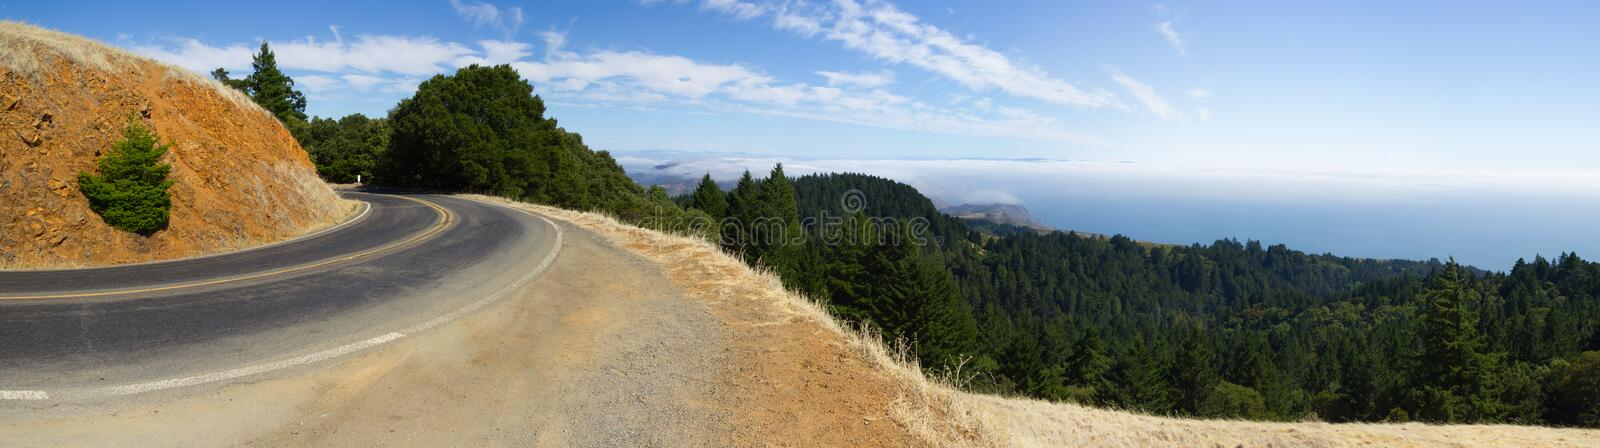 Download Panorama Of Mountain Road With Fog And The Ocean Stock Photo - Image: 26291068